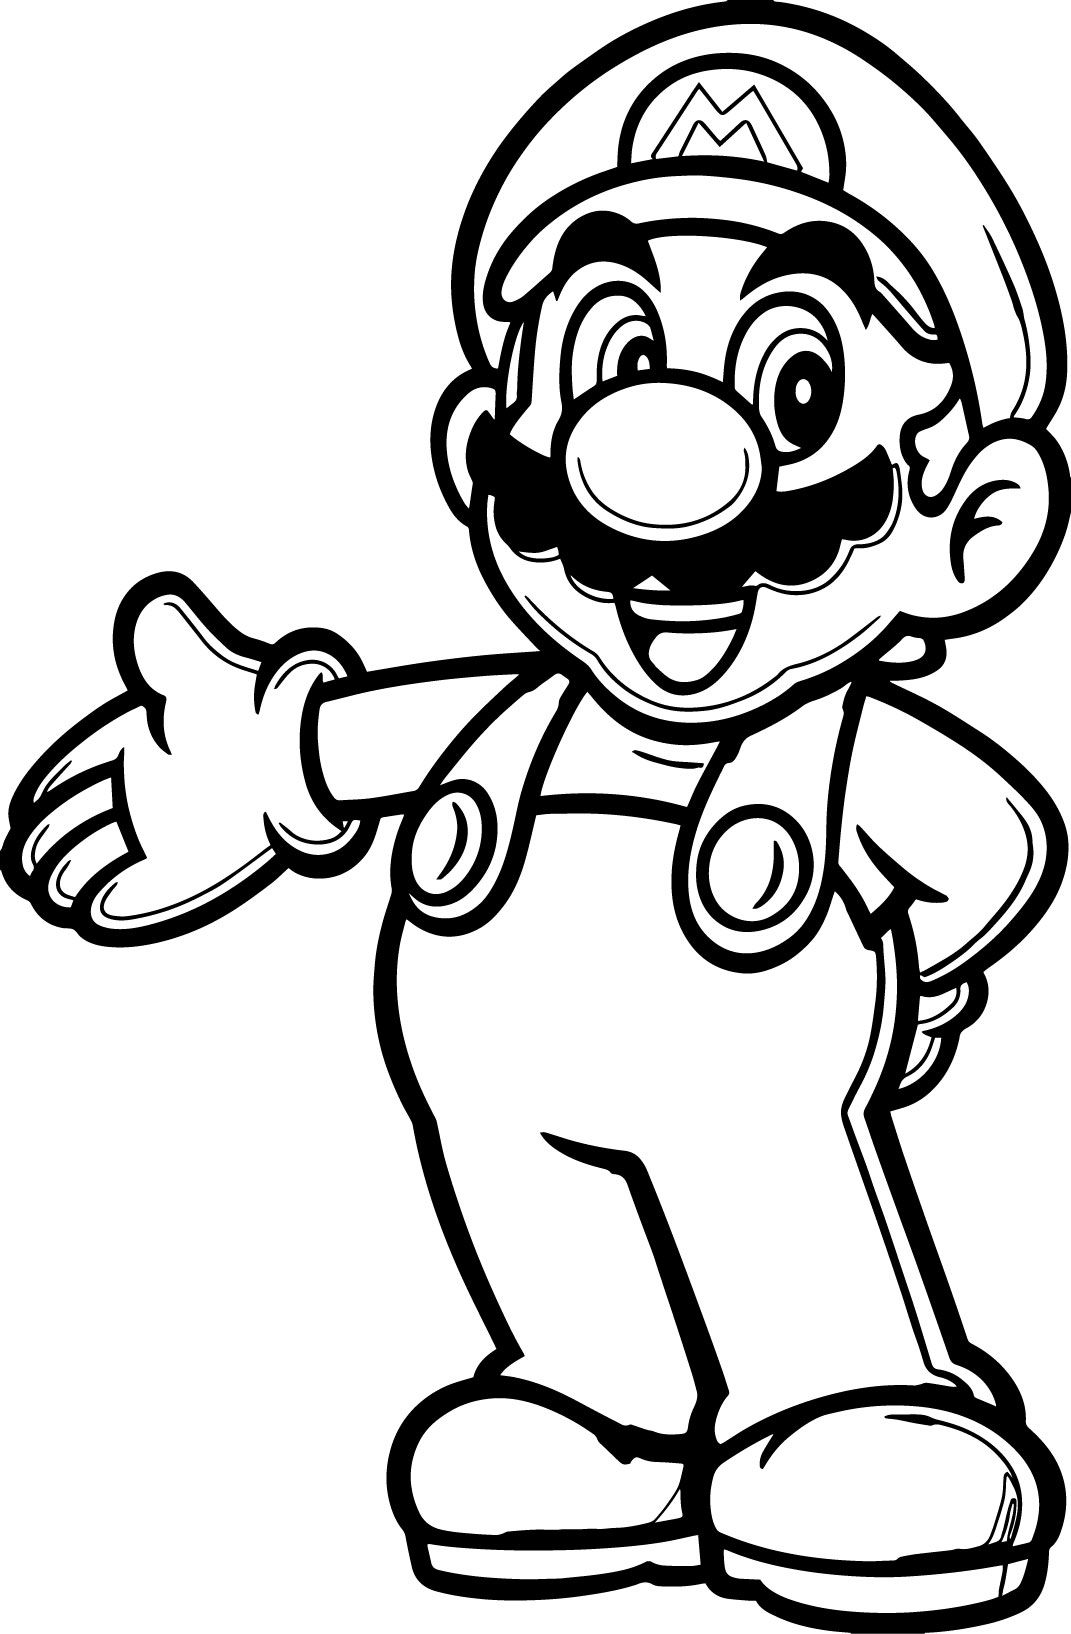 super mario galaxy 2 print out amazing super mario coloring pages pinterest mario and kids s